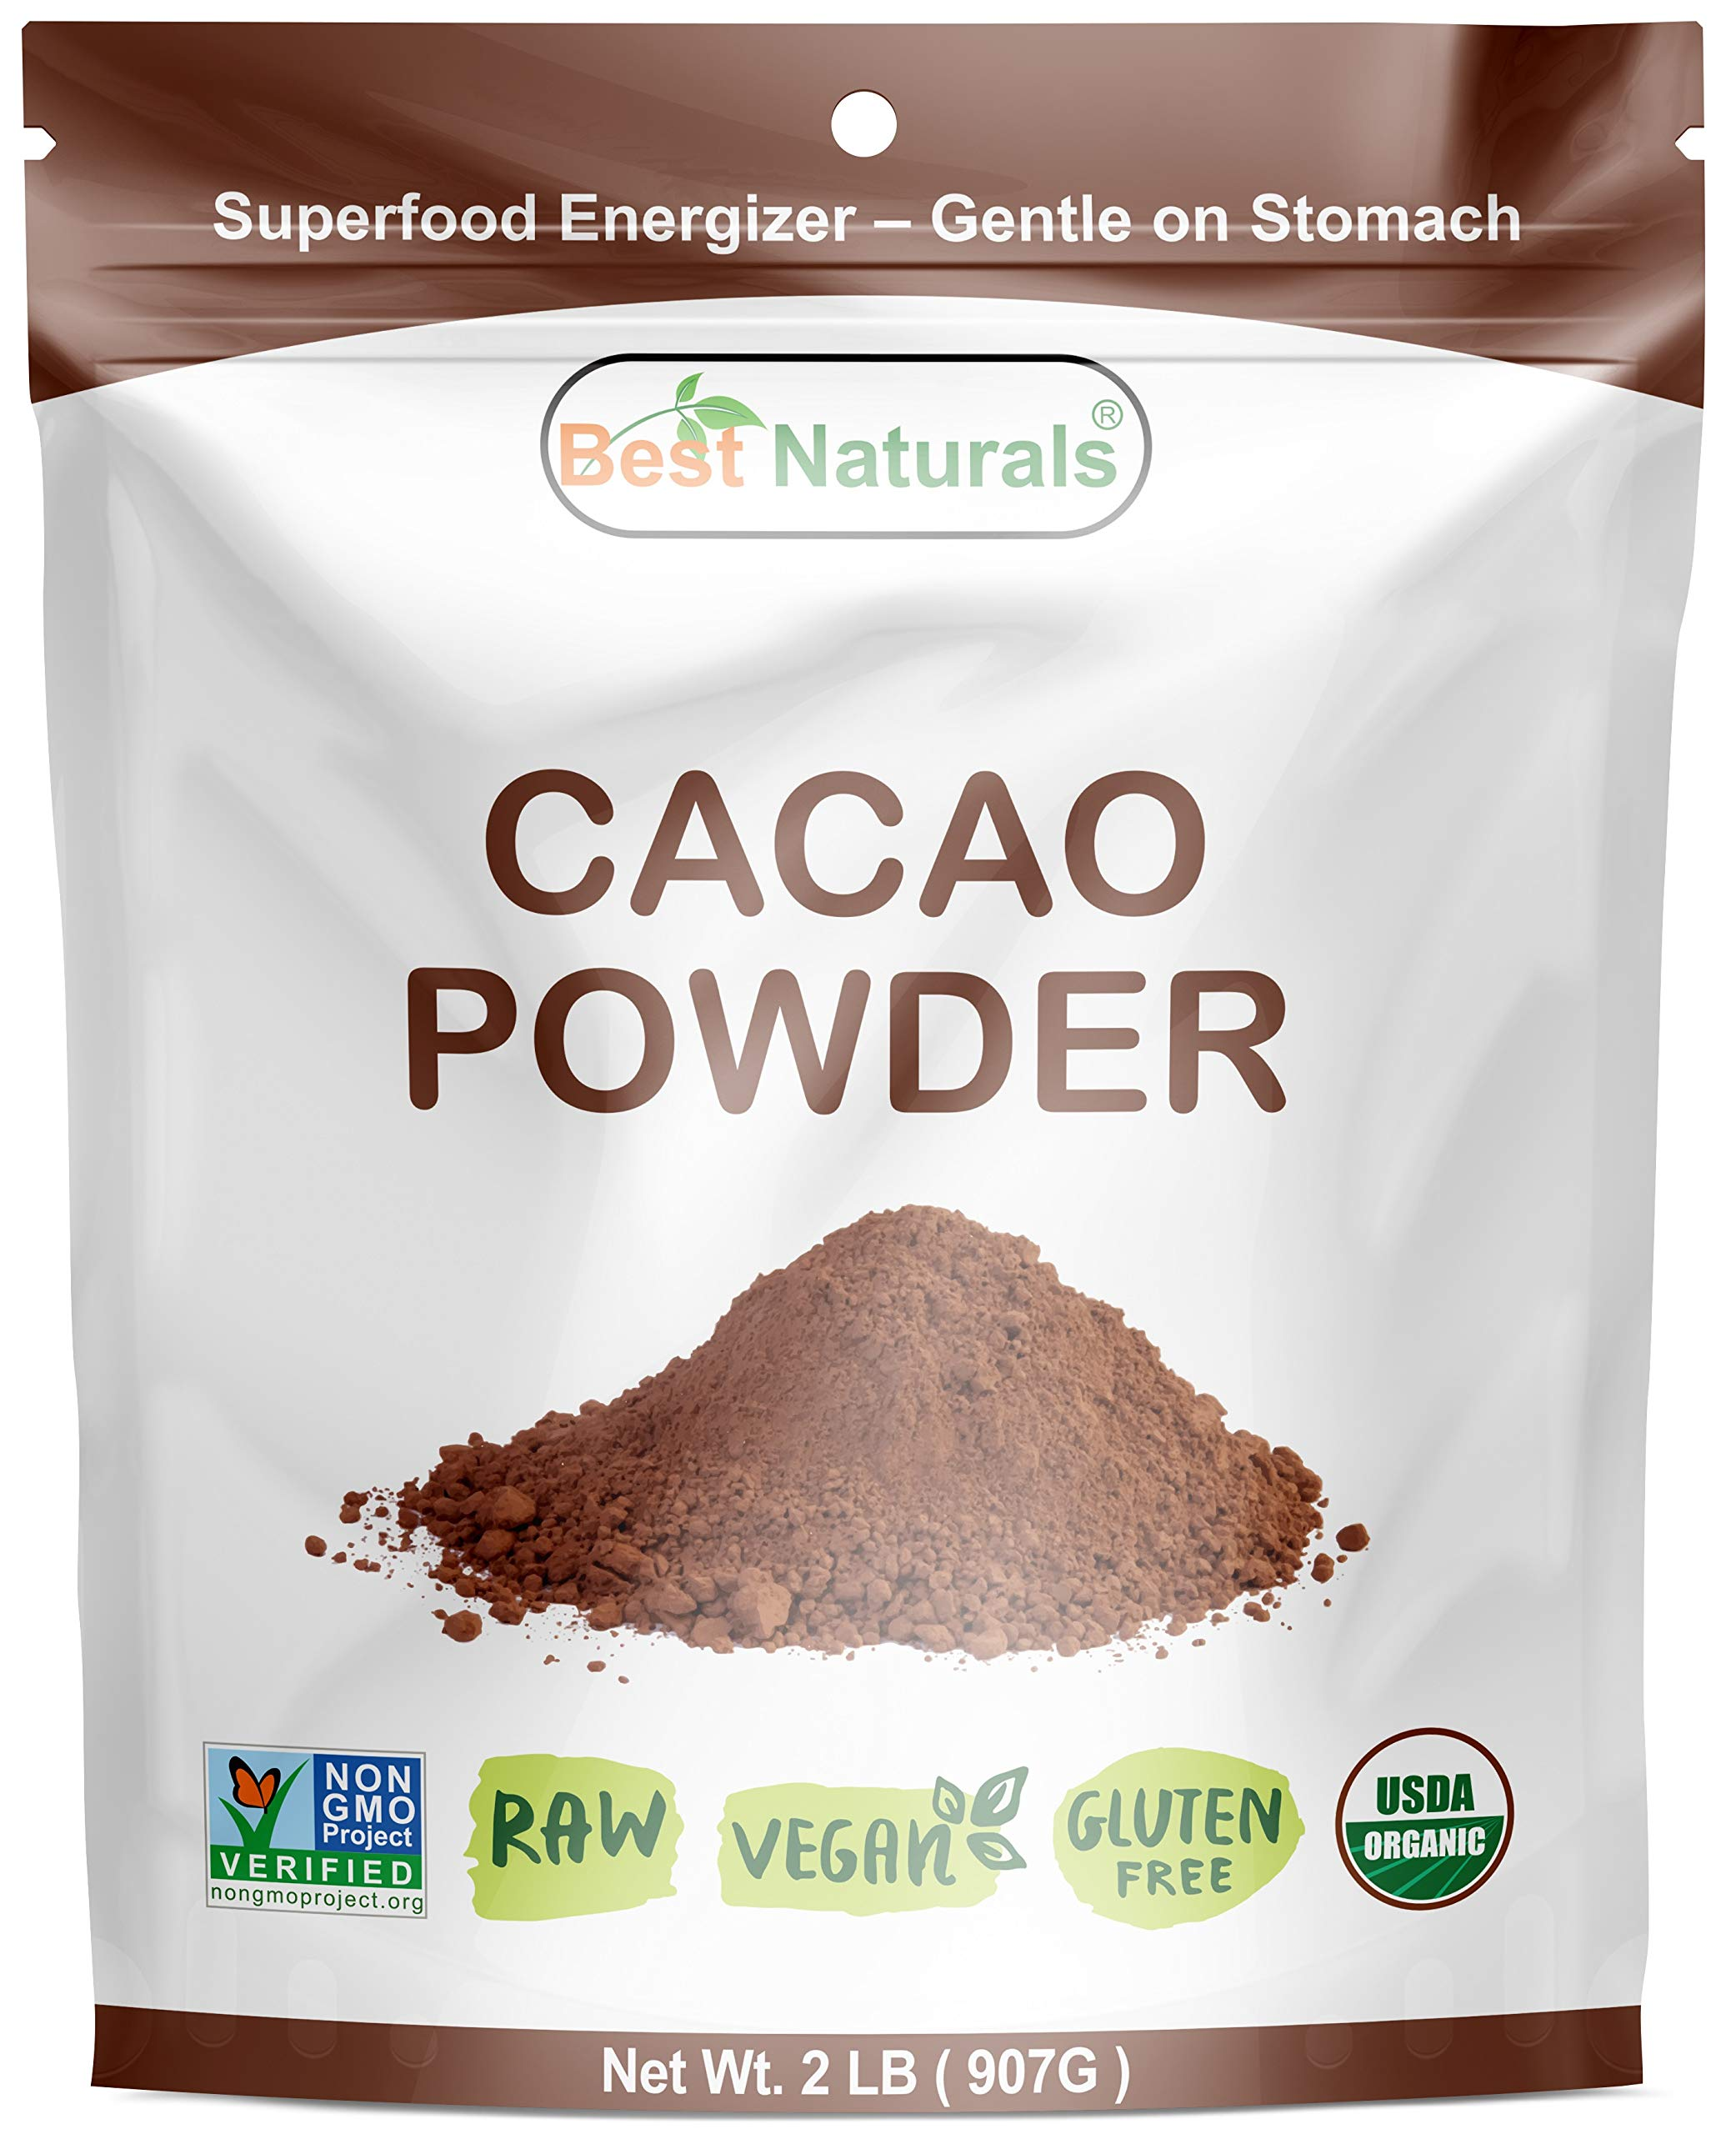 Best Naturals USDA Certified Organic Cacao Powder 2 Pound - Non-GMO Project Verified